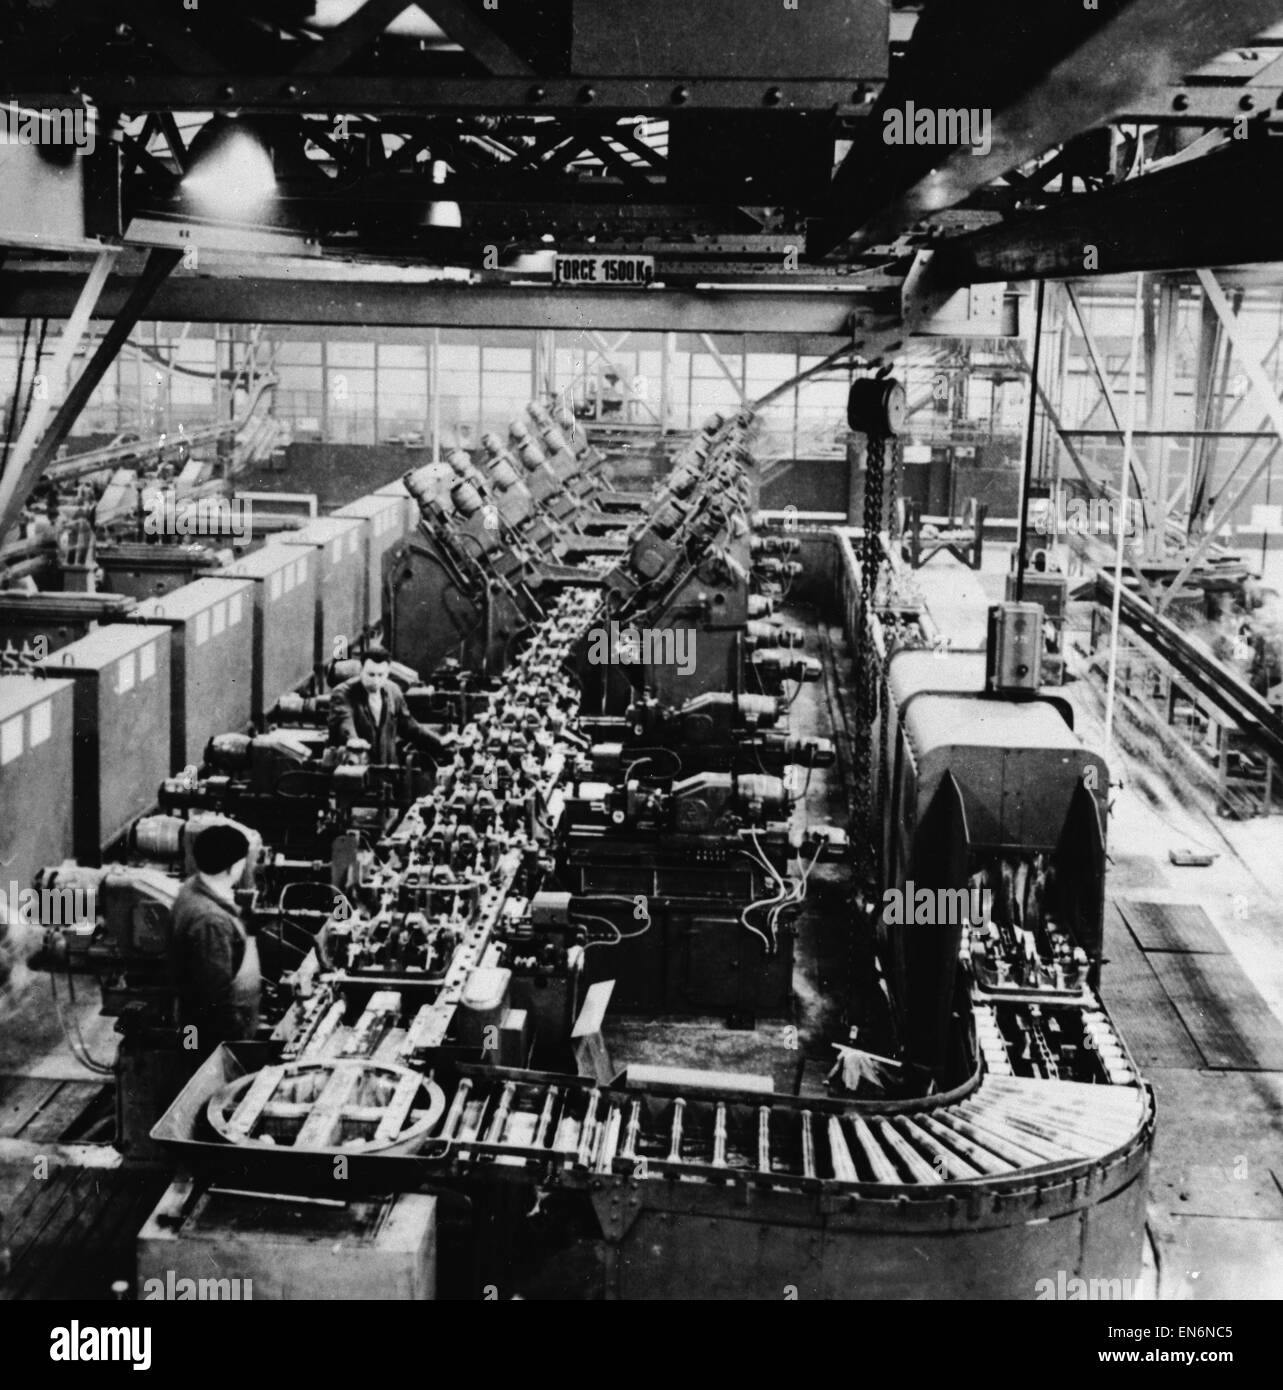 """Picture to accompany the """"Robot Revolution"""" feature which ran in the Daily Mirror newspaper on the week commencing 27th June 1955. Electronic and conveyor belt devices in operation at a British factory. 20th June 1955. Stock Photo"""